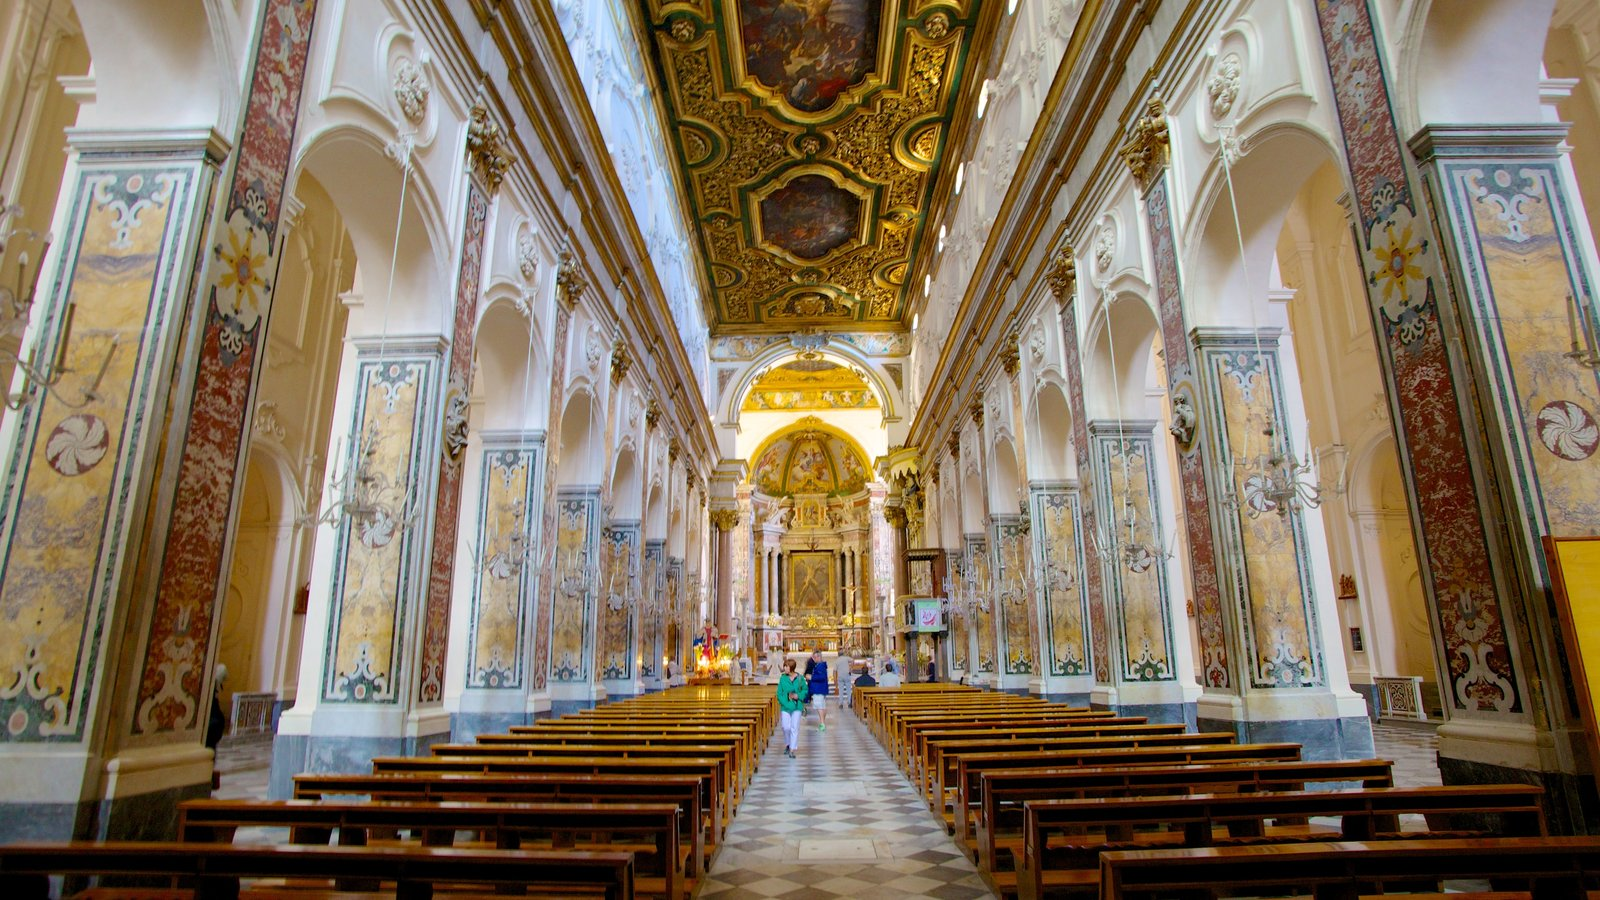 Amalfi Coast which includes a church or cathedral, religious elements and interior views